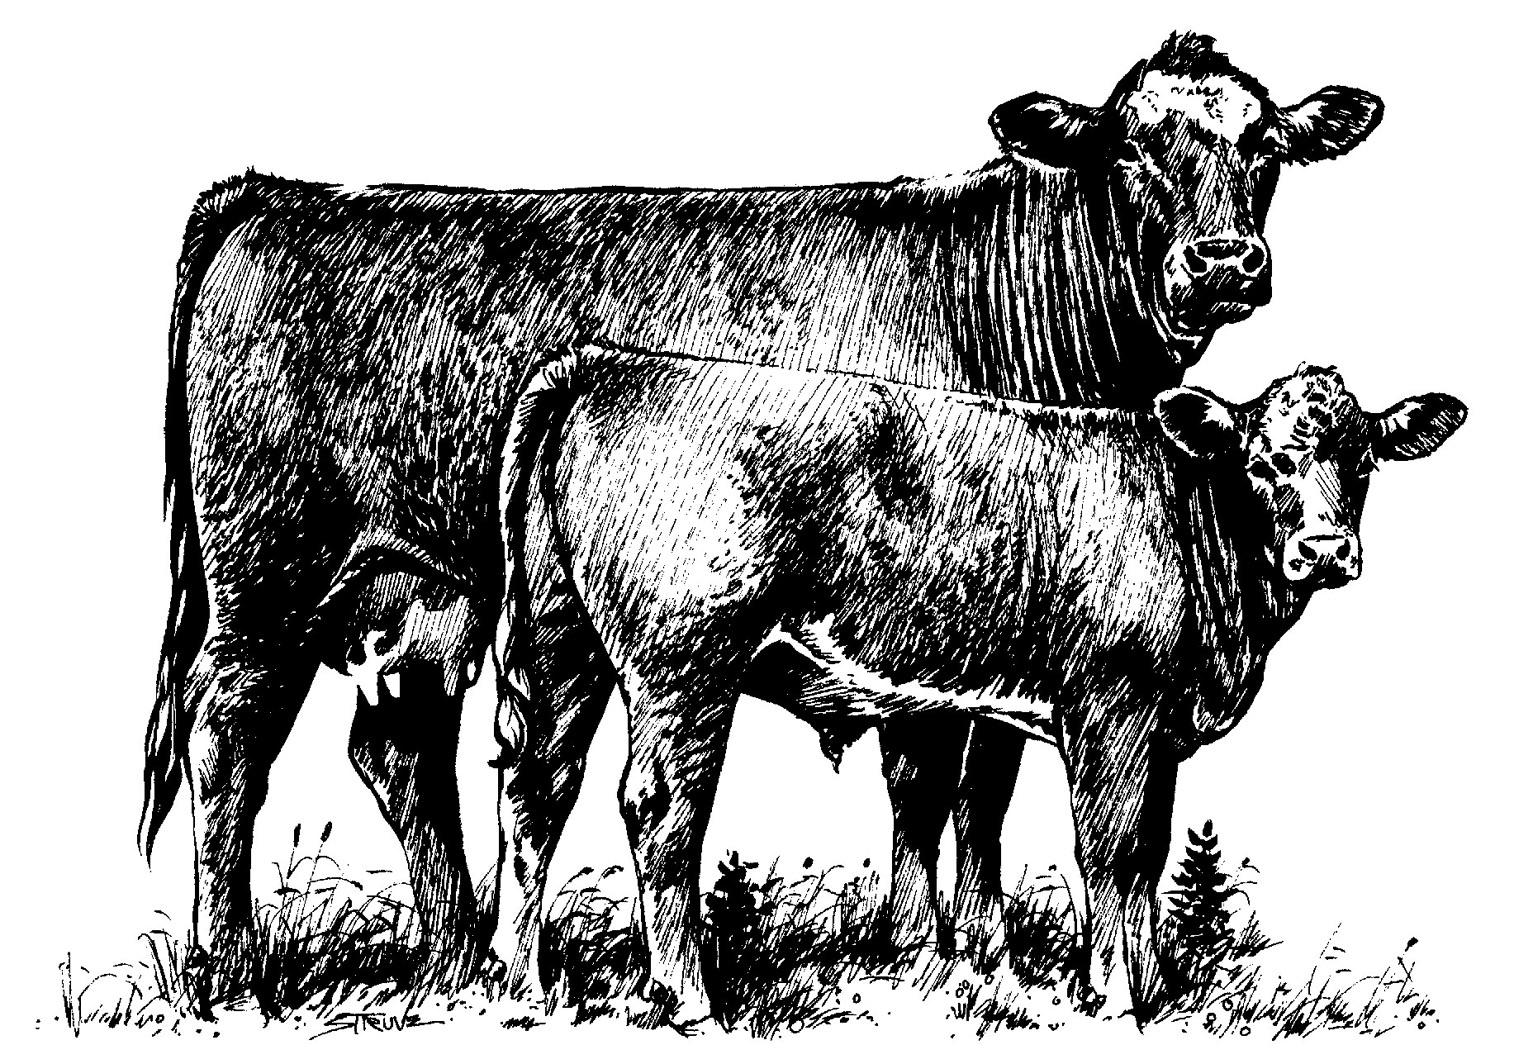 Clipart of a cattle. Cow clip art transparent background png black and white